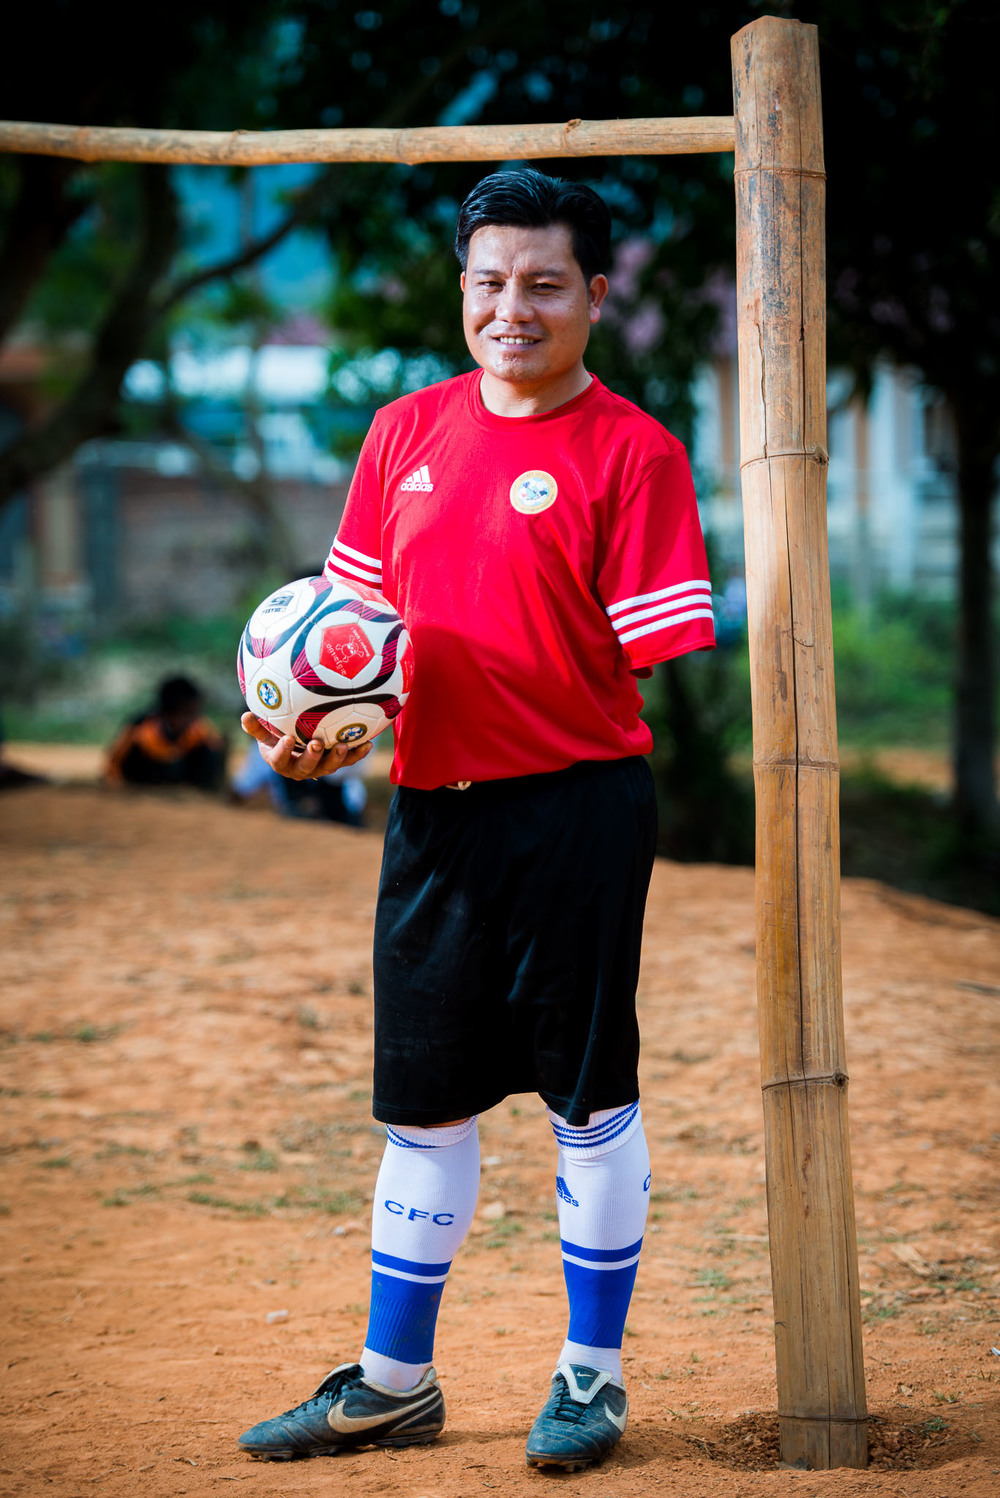 Spirit of Soccer coach, Laos, April 2015